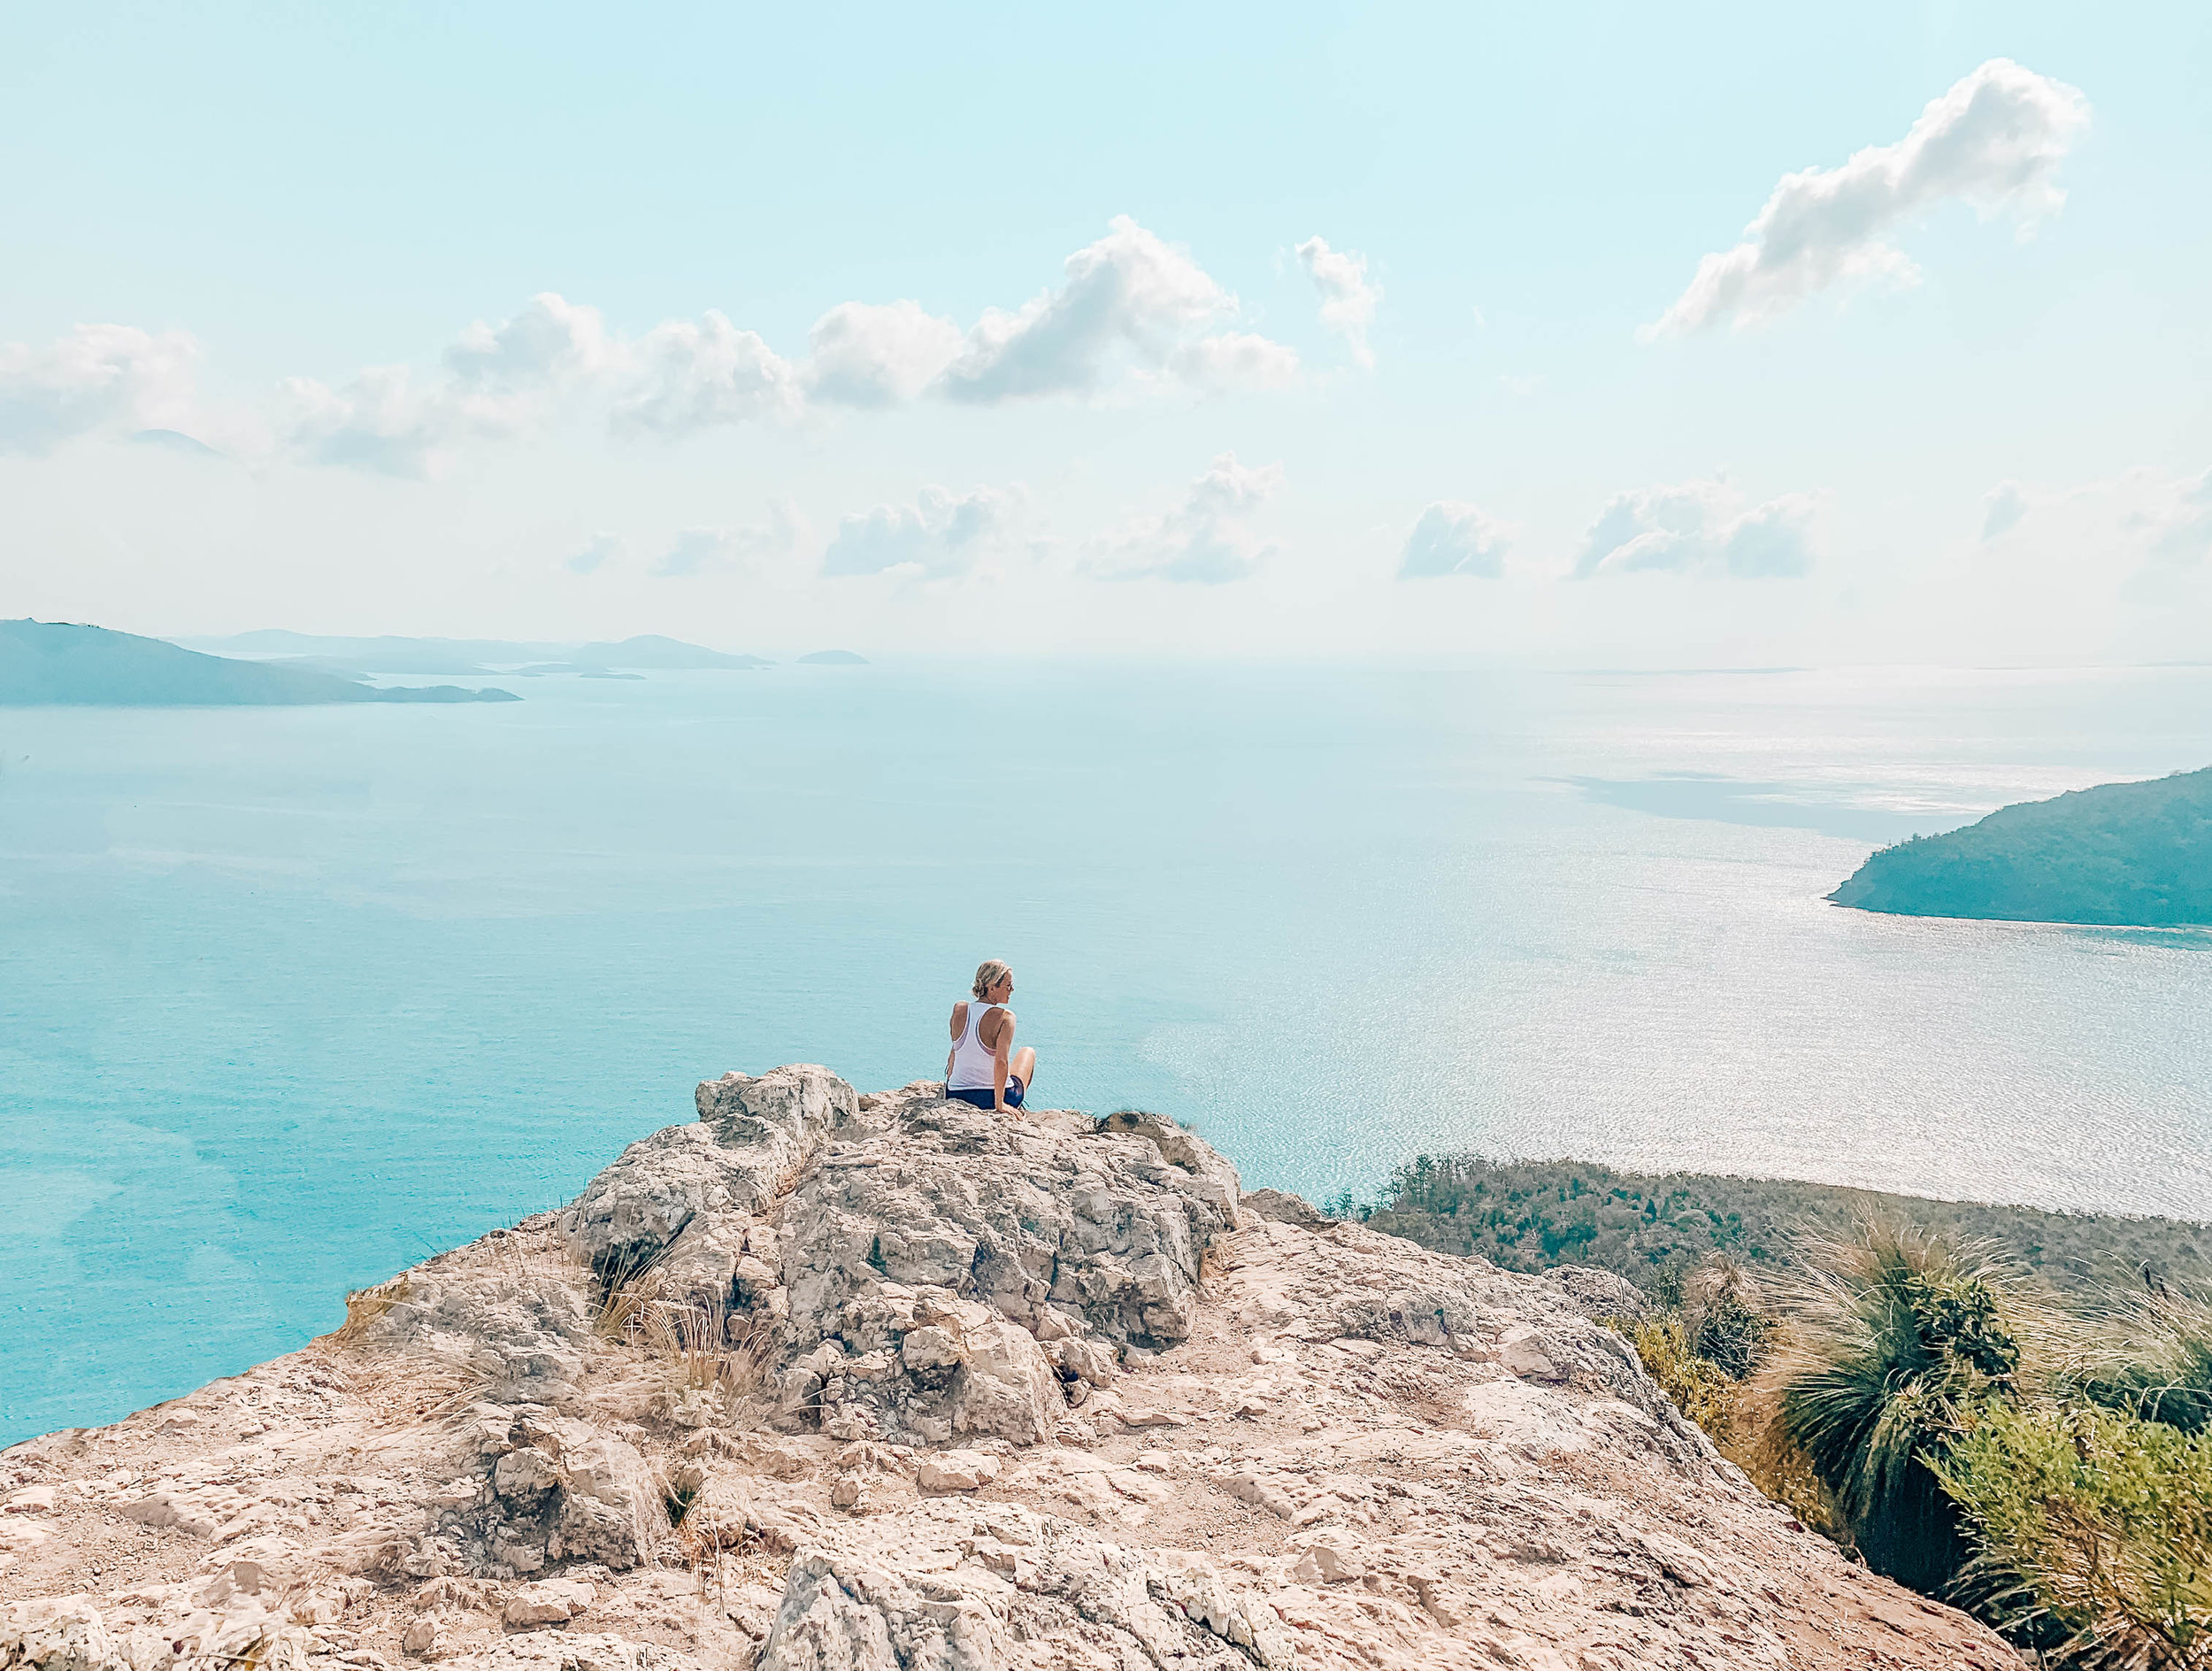 Hiking Passage Peak, the highest point in Hamilton Island